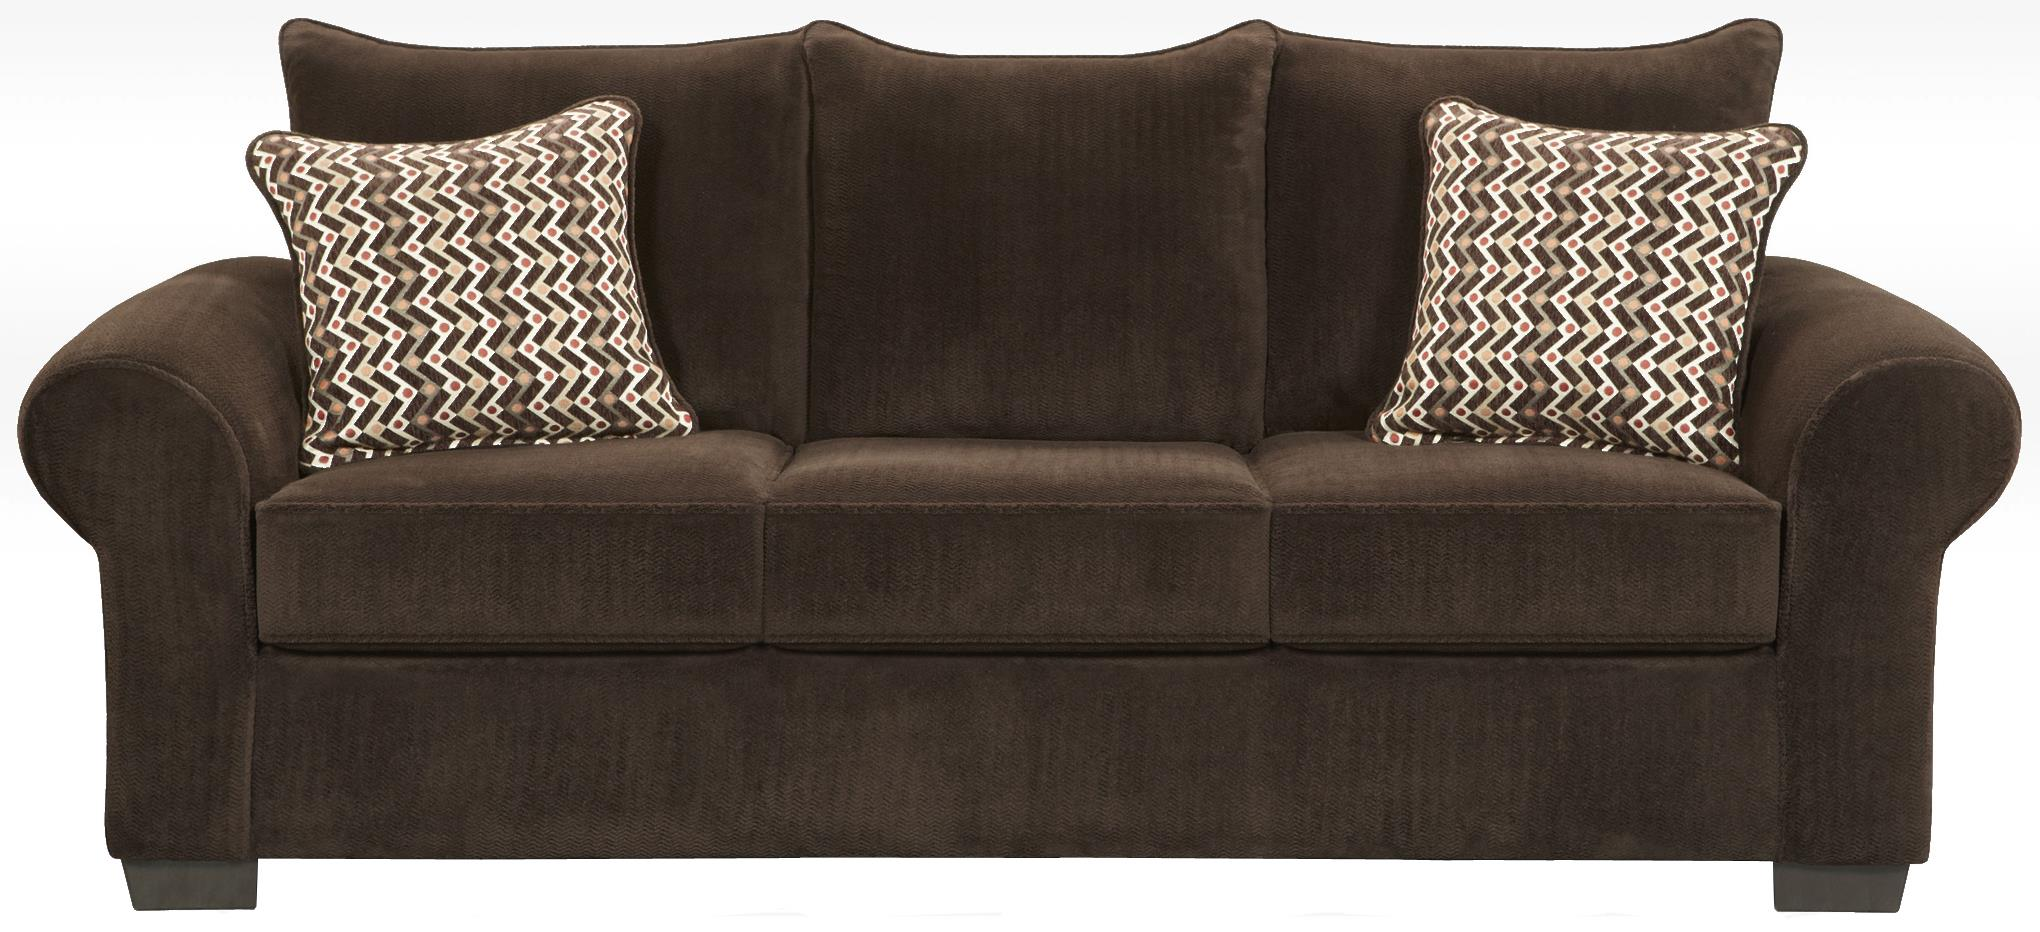 Affordable furniture 7300 contemporary sofa with large for Affordable furniture jacksonville fl